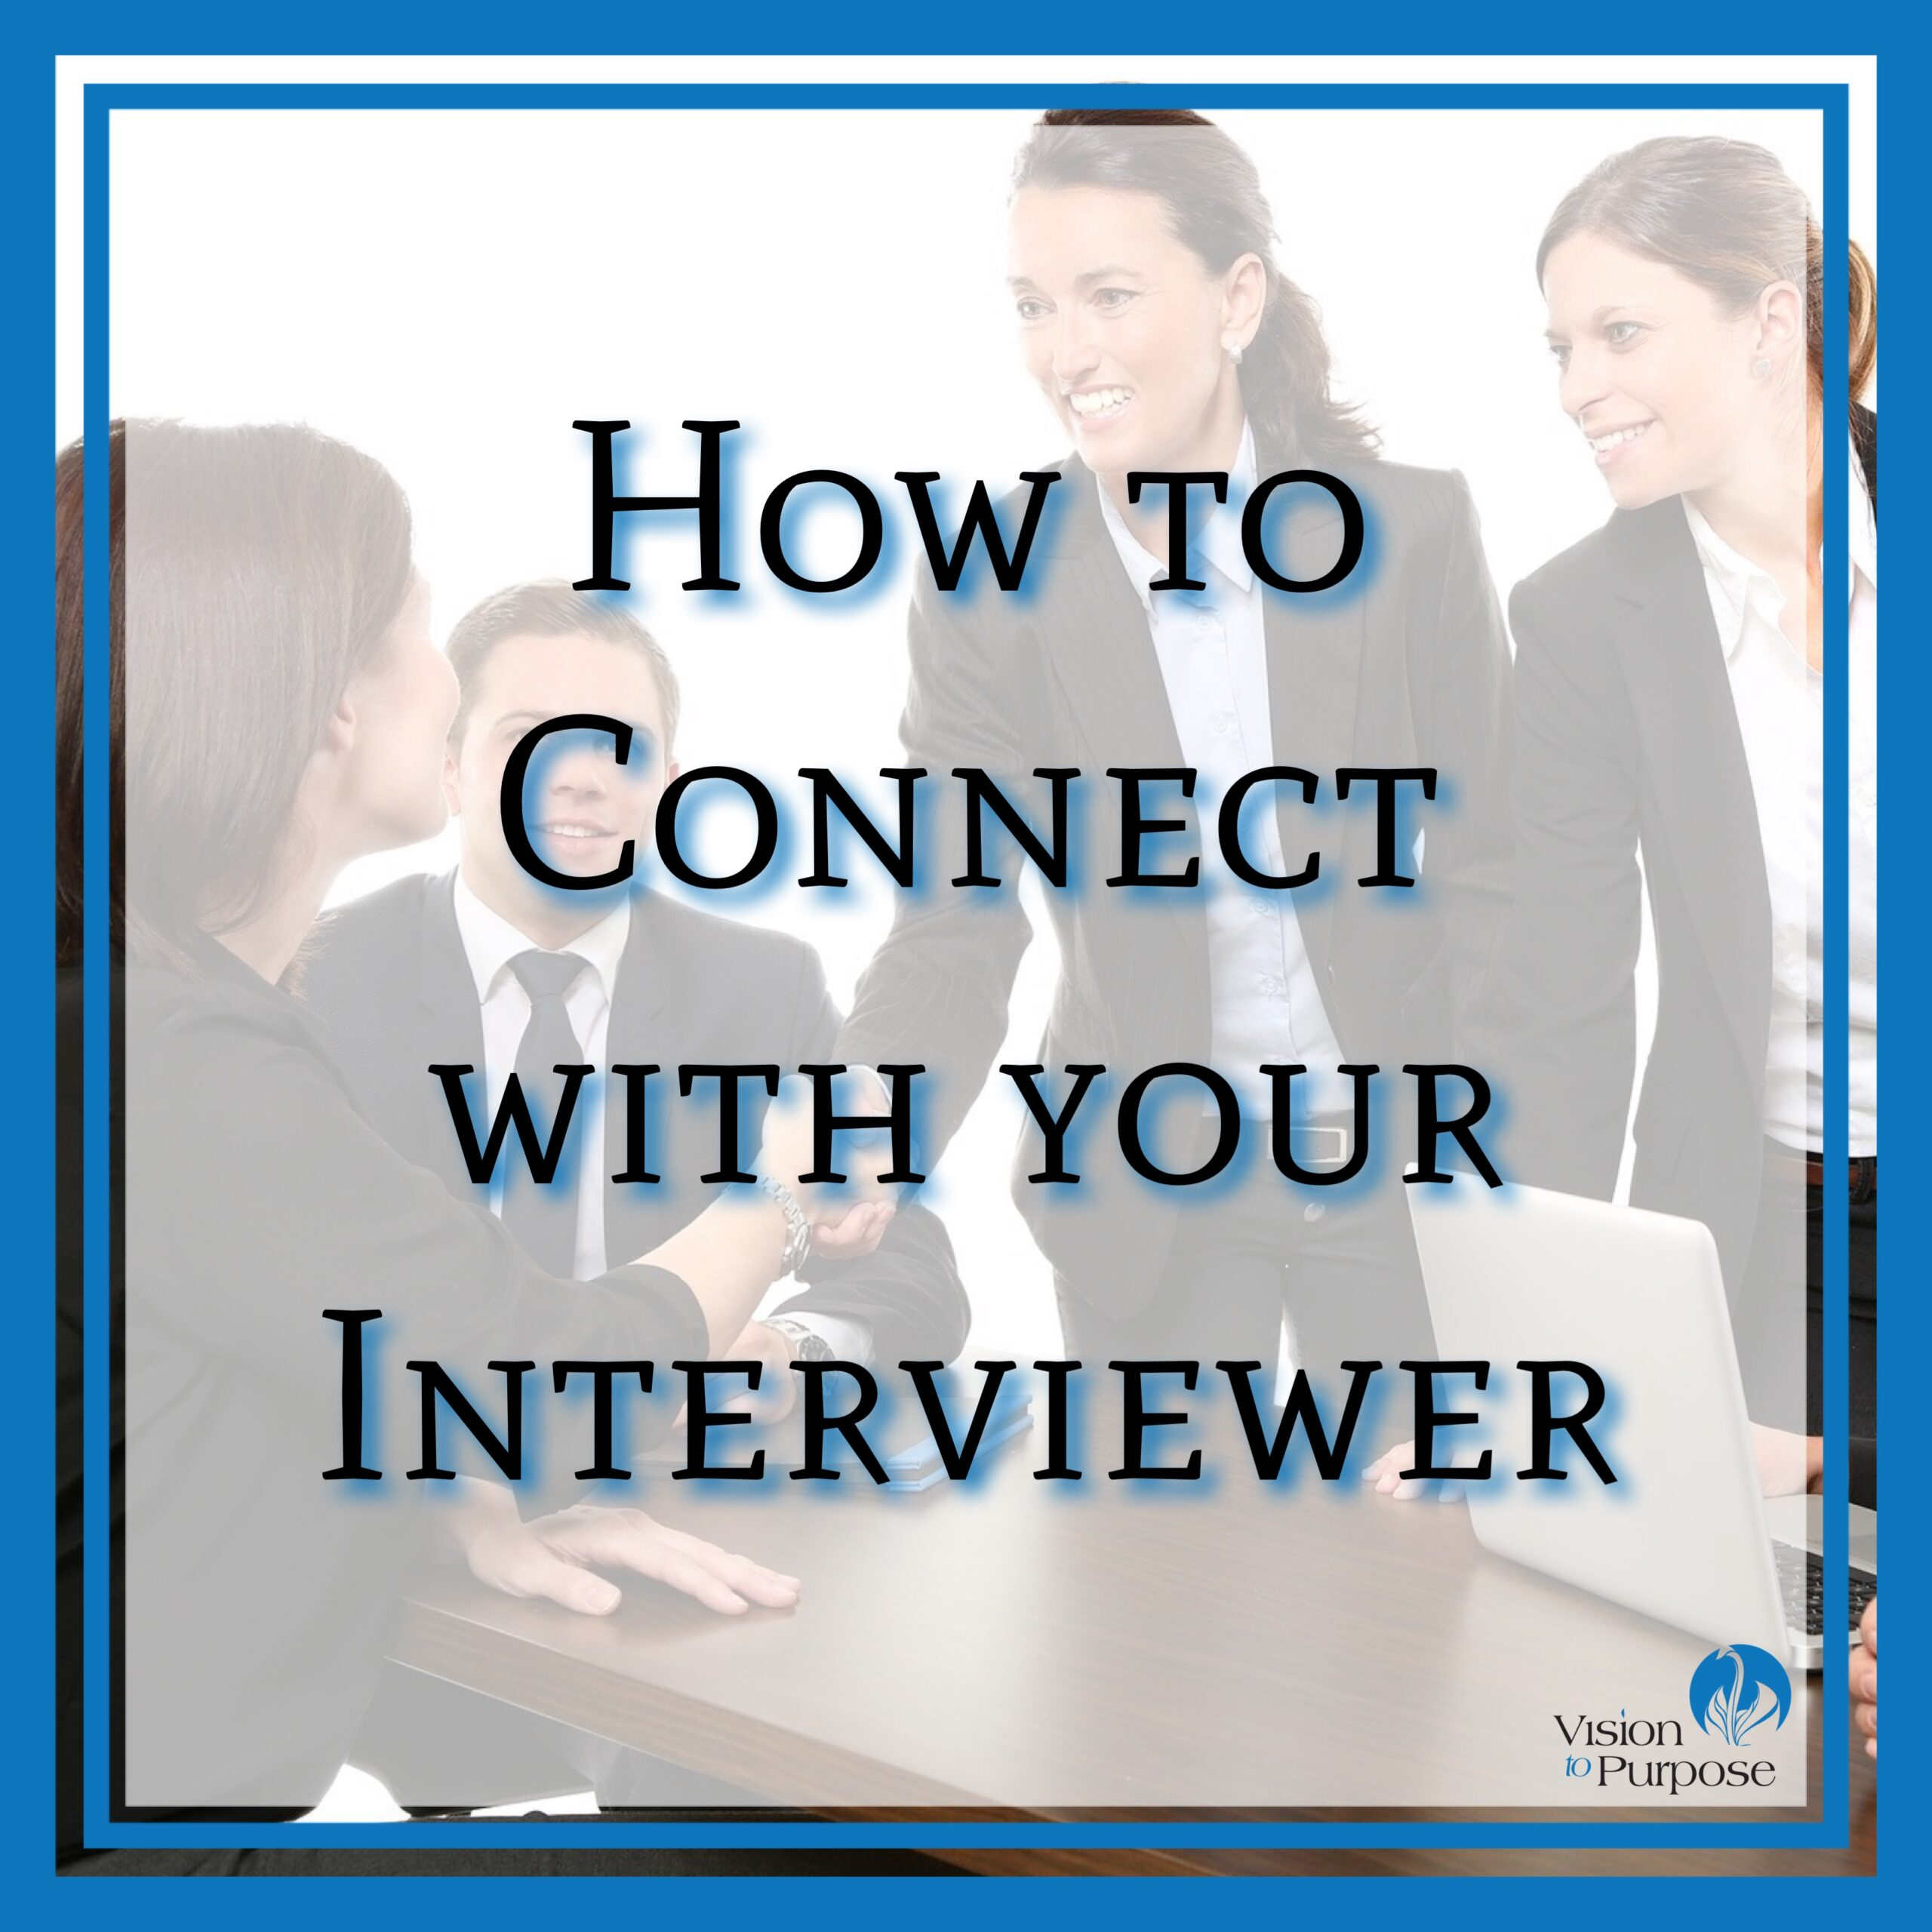 How to Connect with Your Interviewer